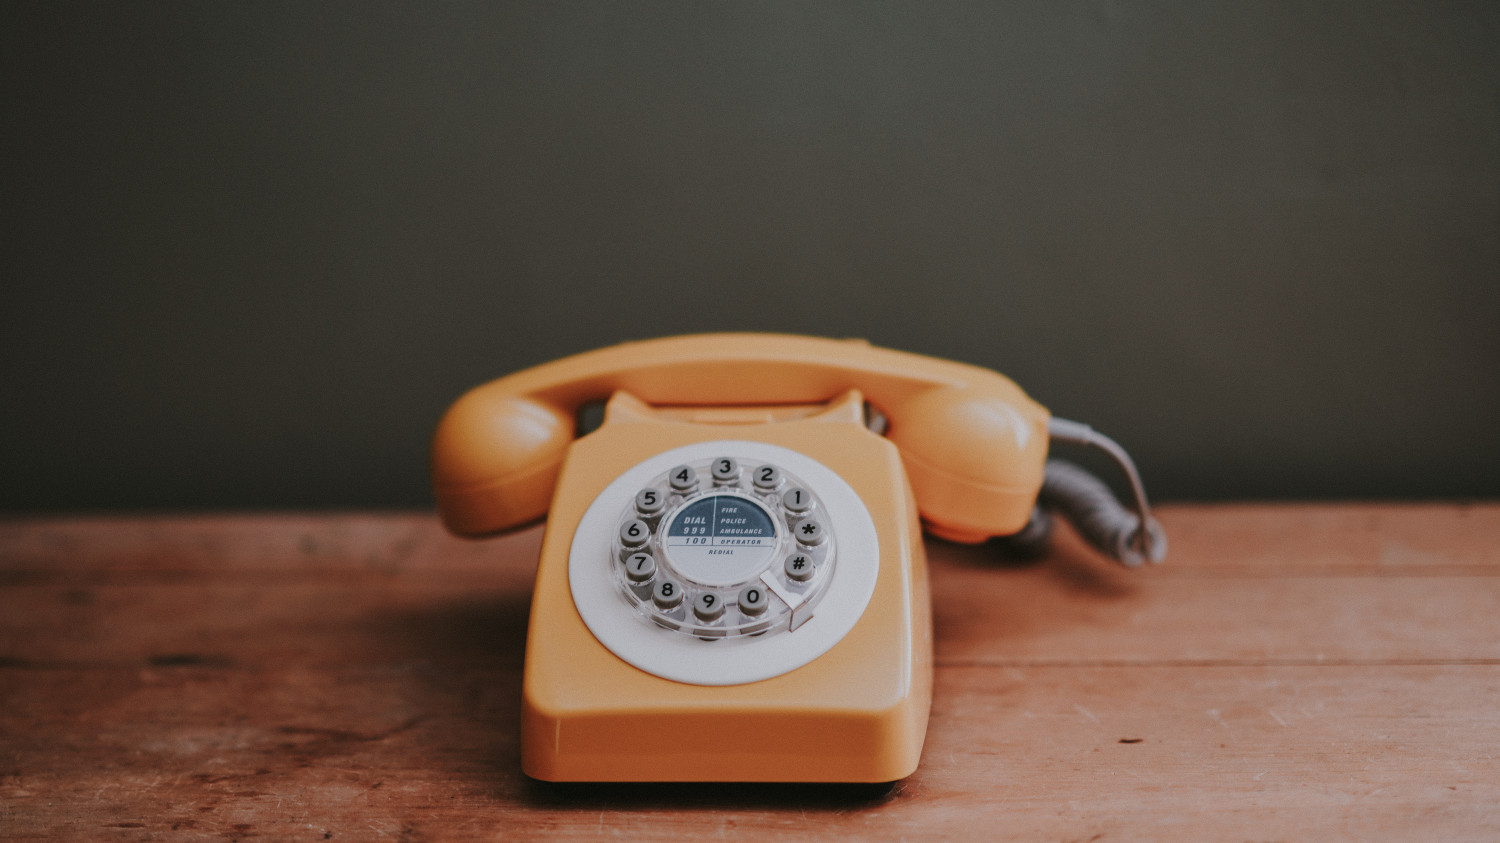 Image of an orange rotary phone on a wooden desk